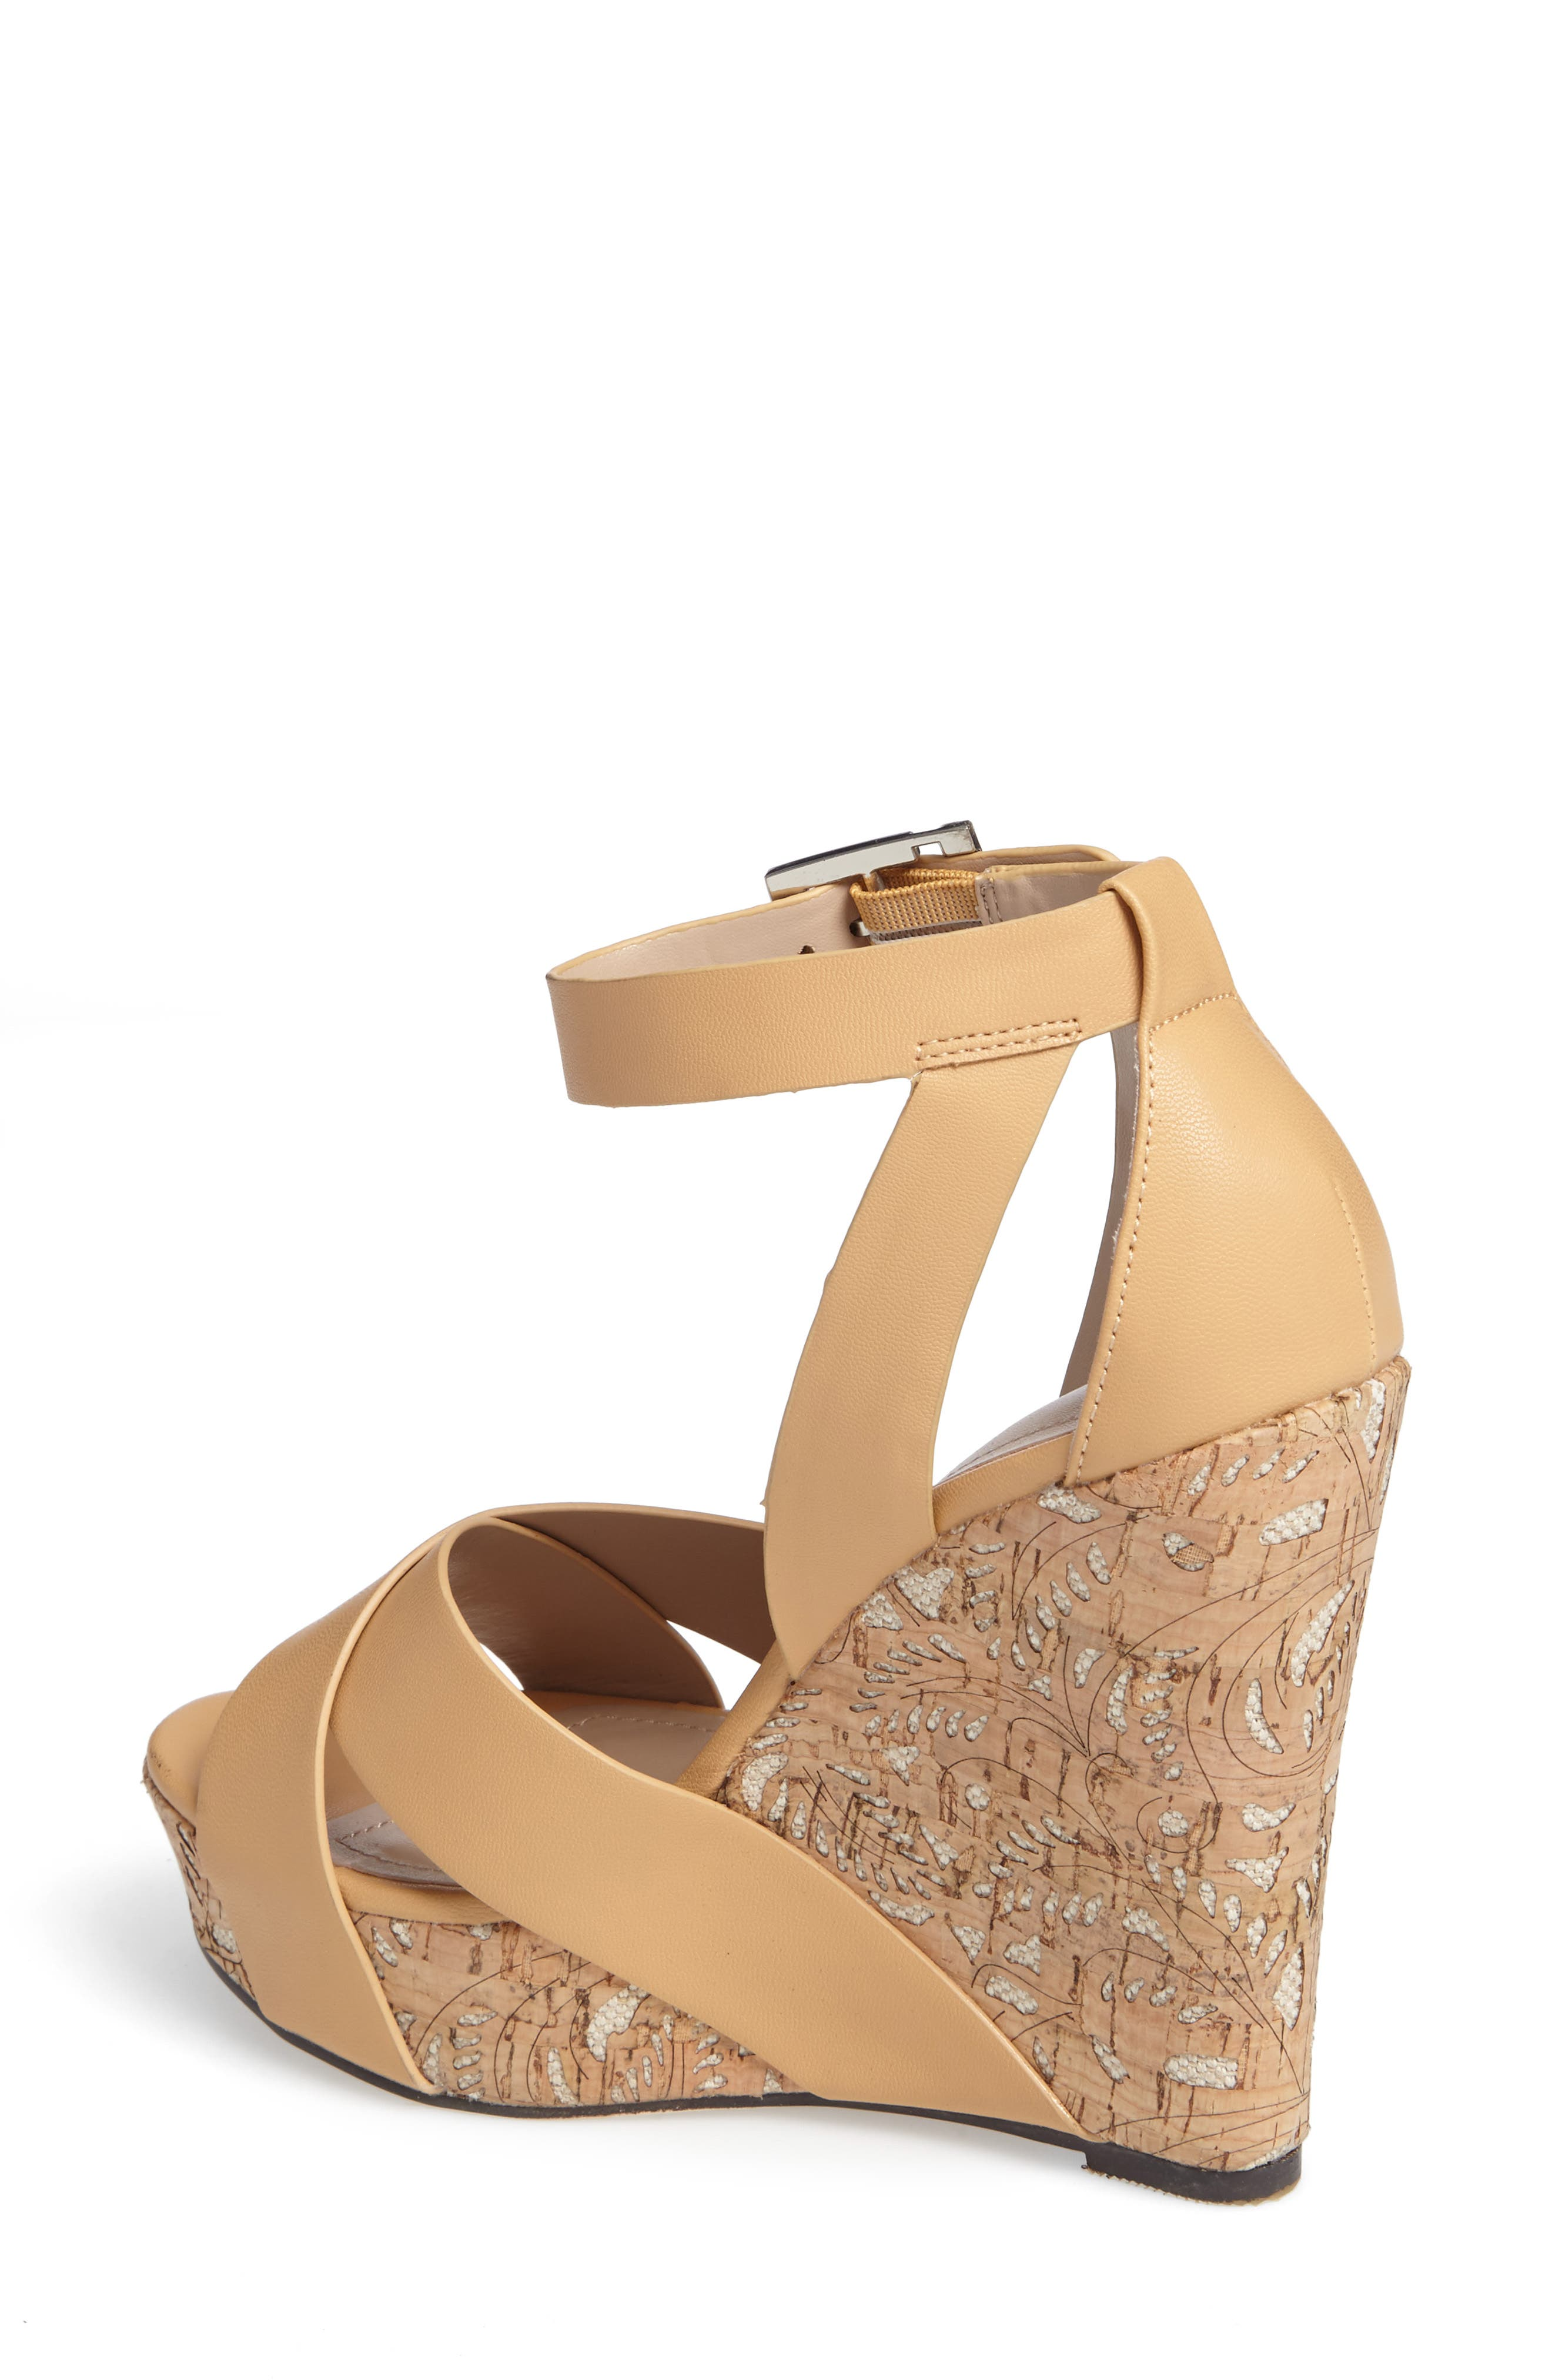 Amsterdam Platform Wedge Sandal,                             Alternate thumbnail 6, color,